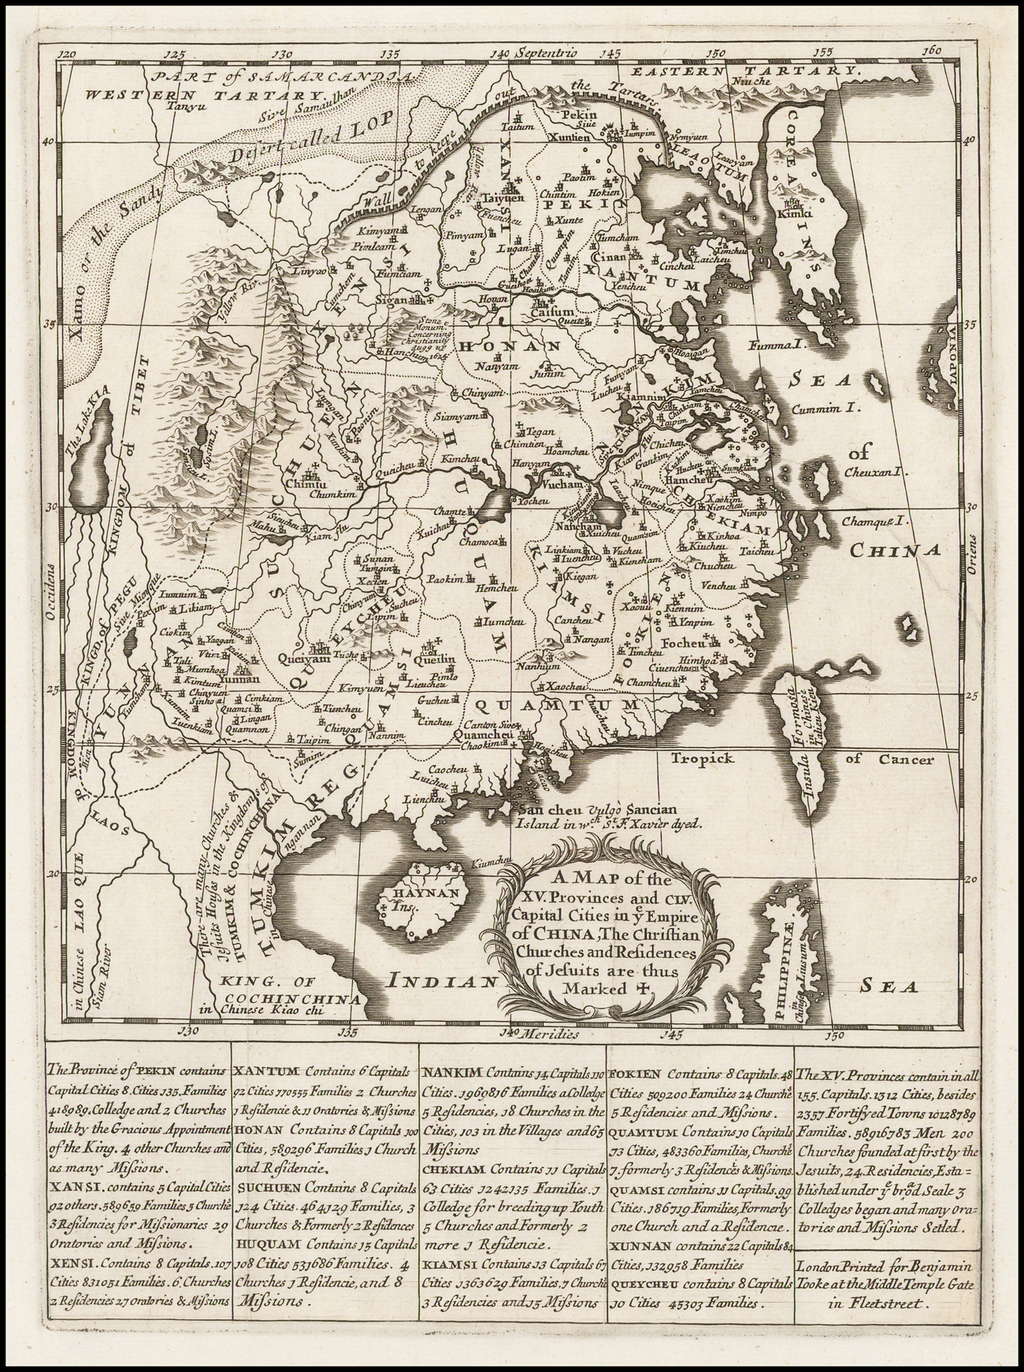 A Map of the XV Provinces and CLV Capital Cities in ye Empire of China, The Christian Churches and Residences of Jesuits are marked + By Benjamin Tooke